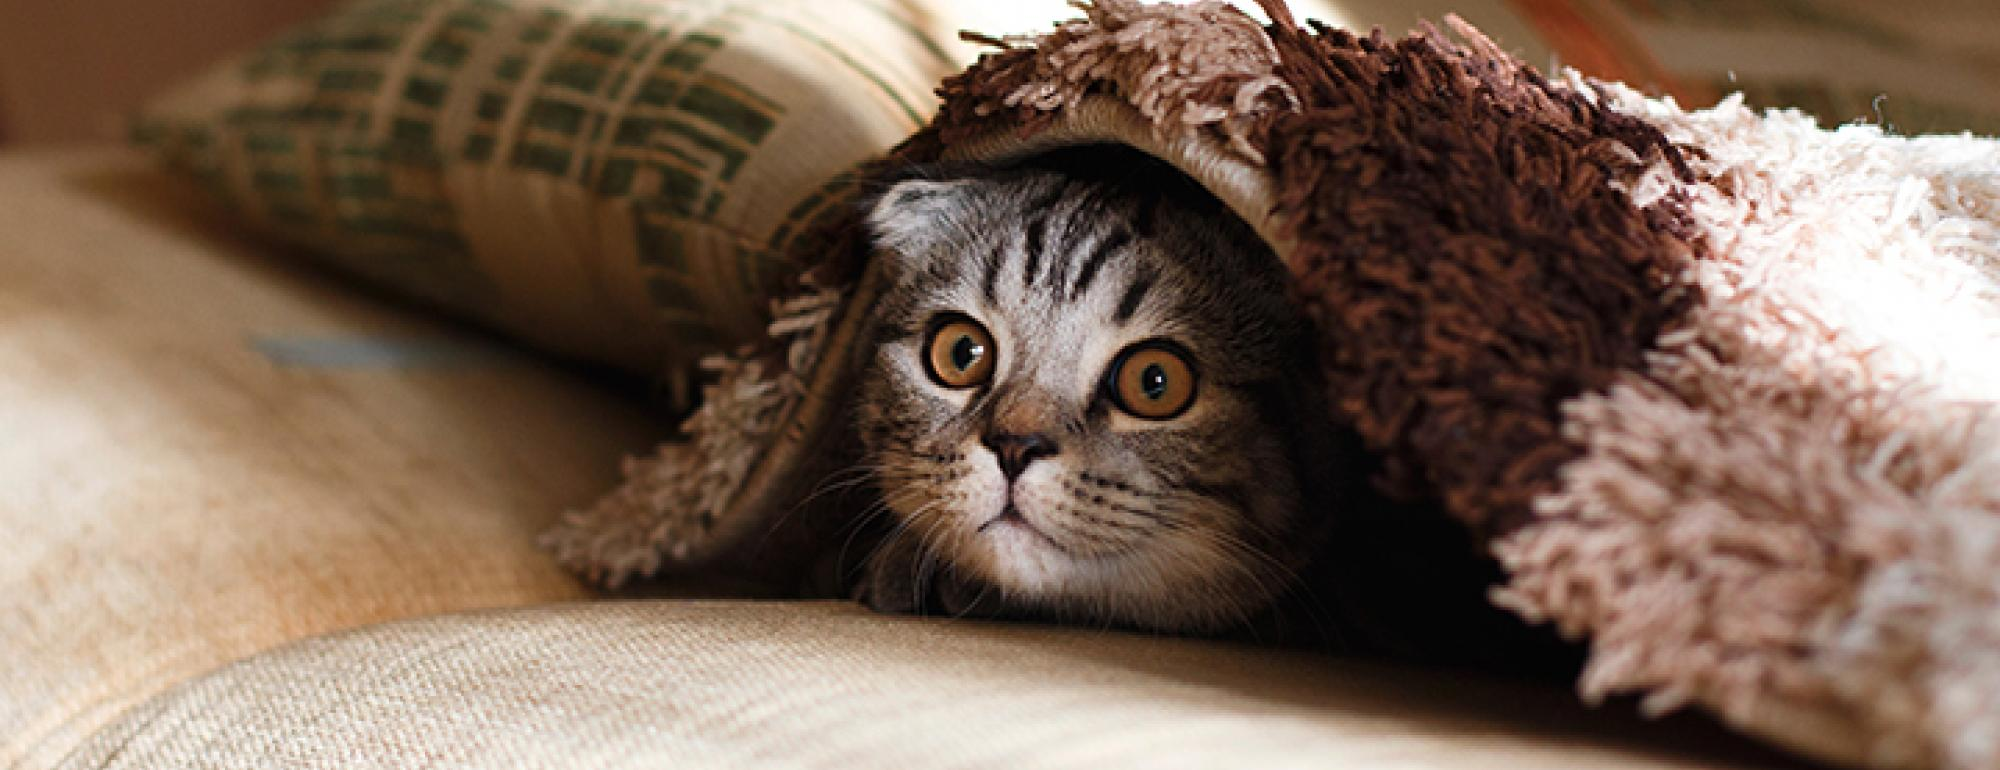 Cute Kitten Peering out from under a Blanket